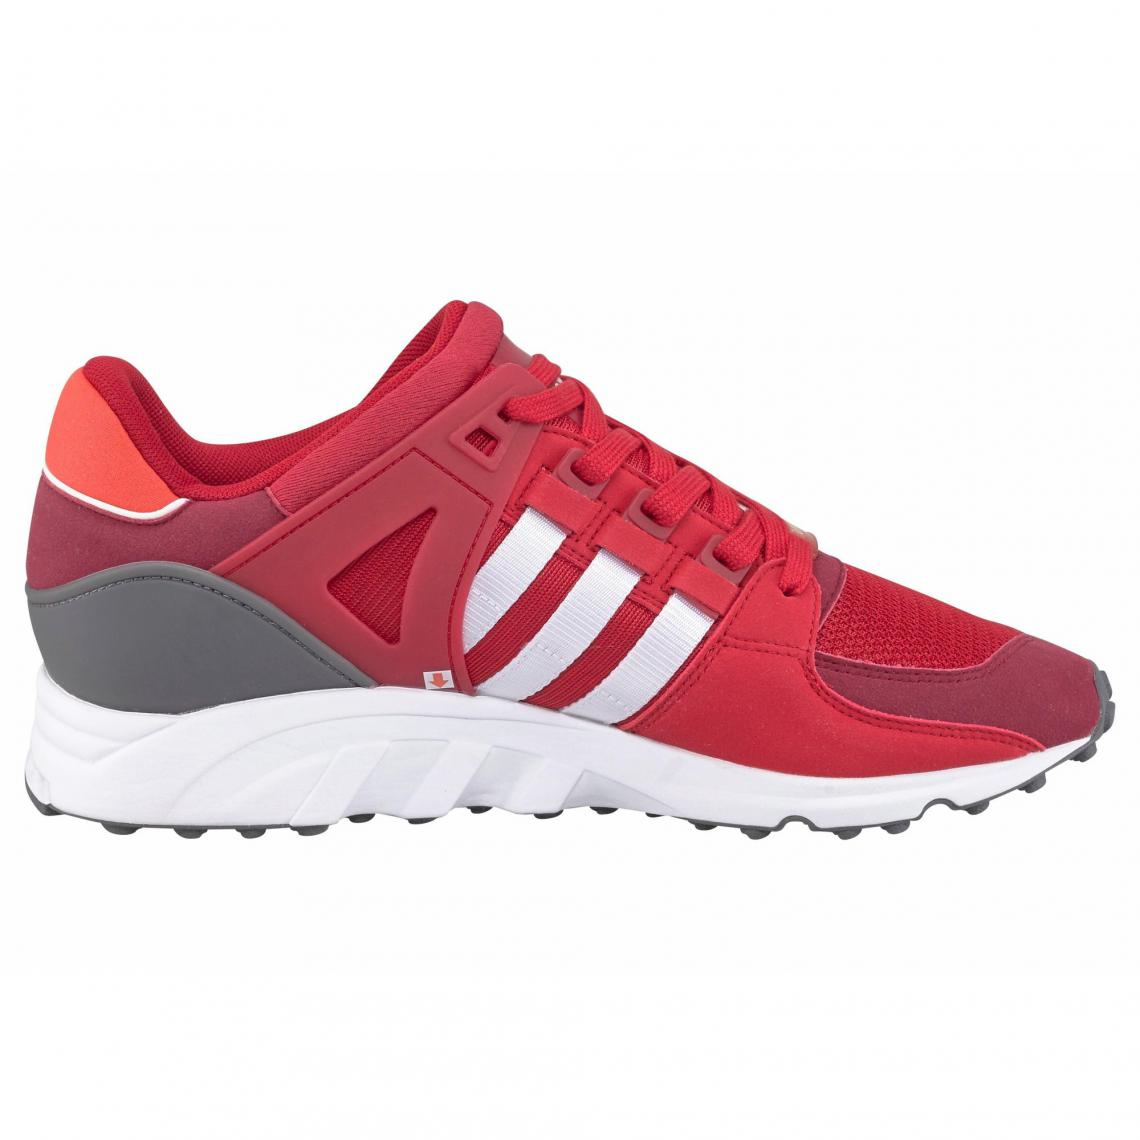 best cheap ad491 43bf3 Toutes les chaussures Adidas Originals